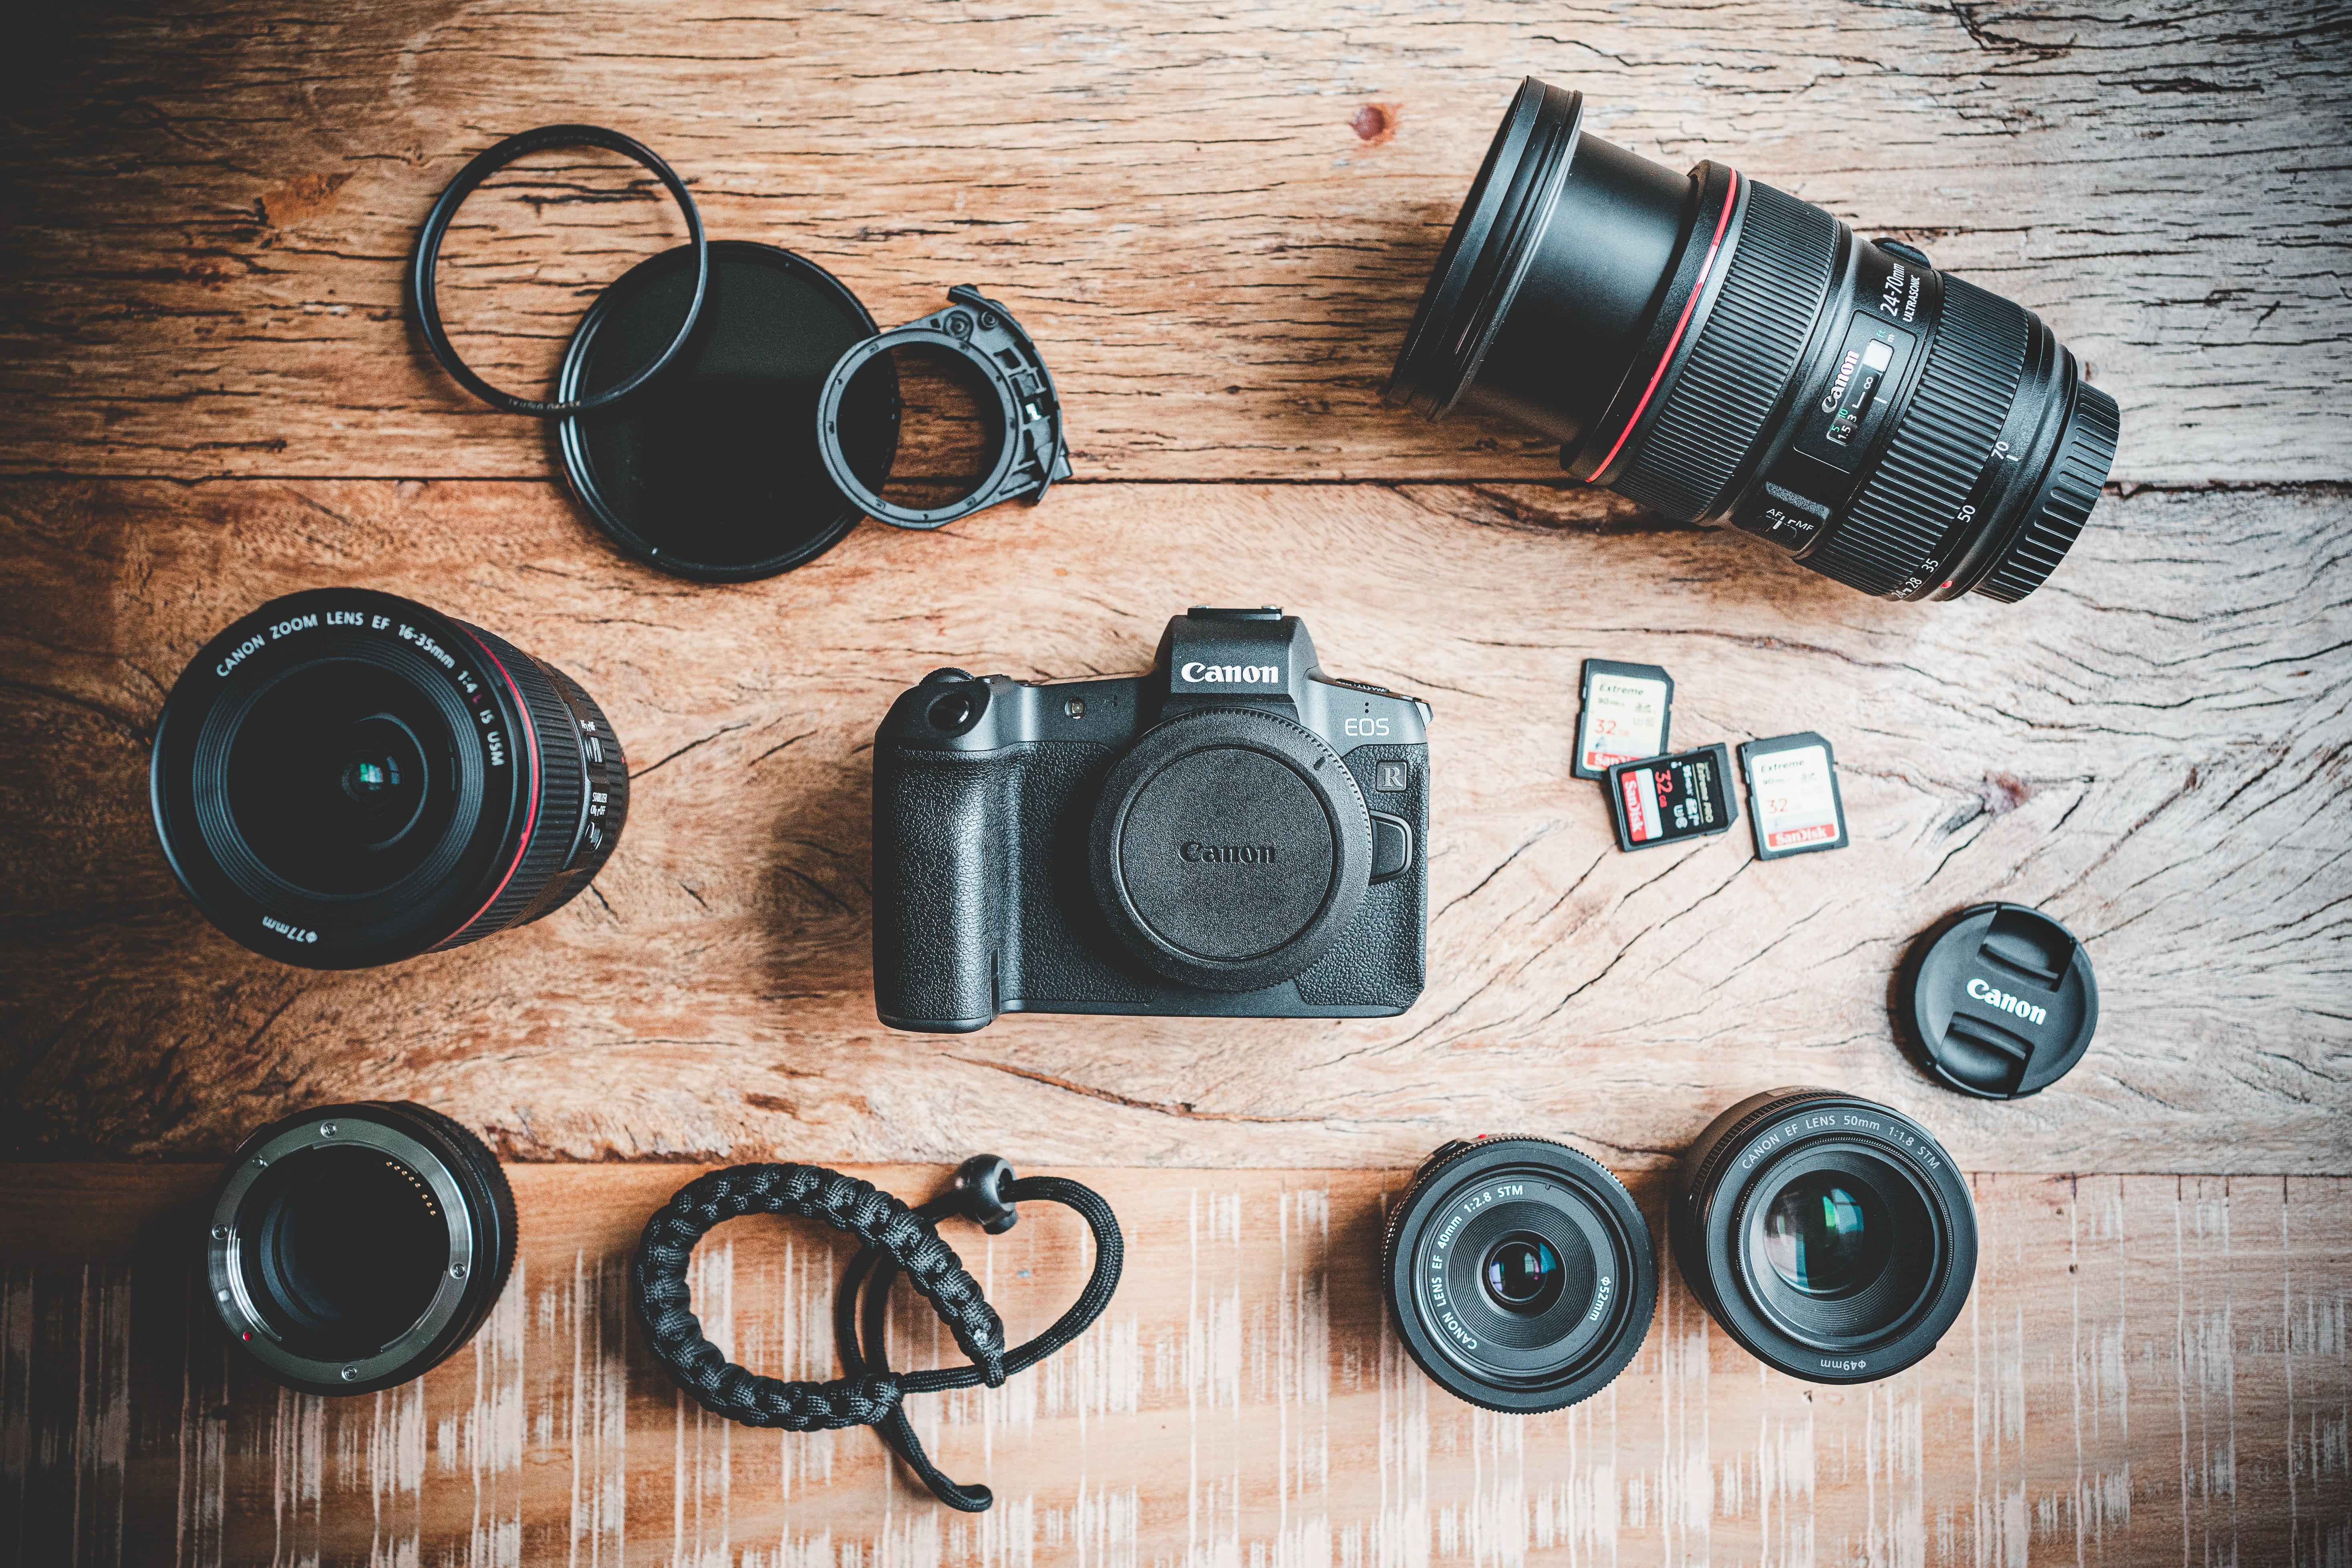 Rent the Canon EOS R camera in Berlin with Beazy, the camera sharing community